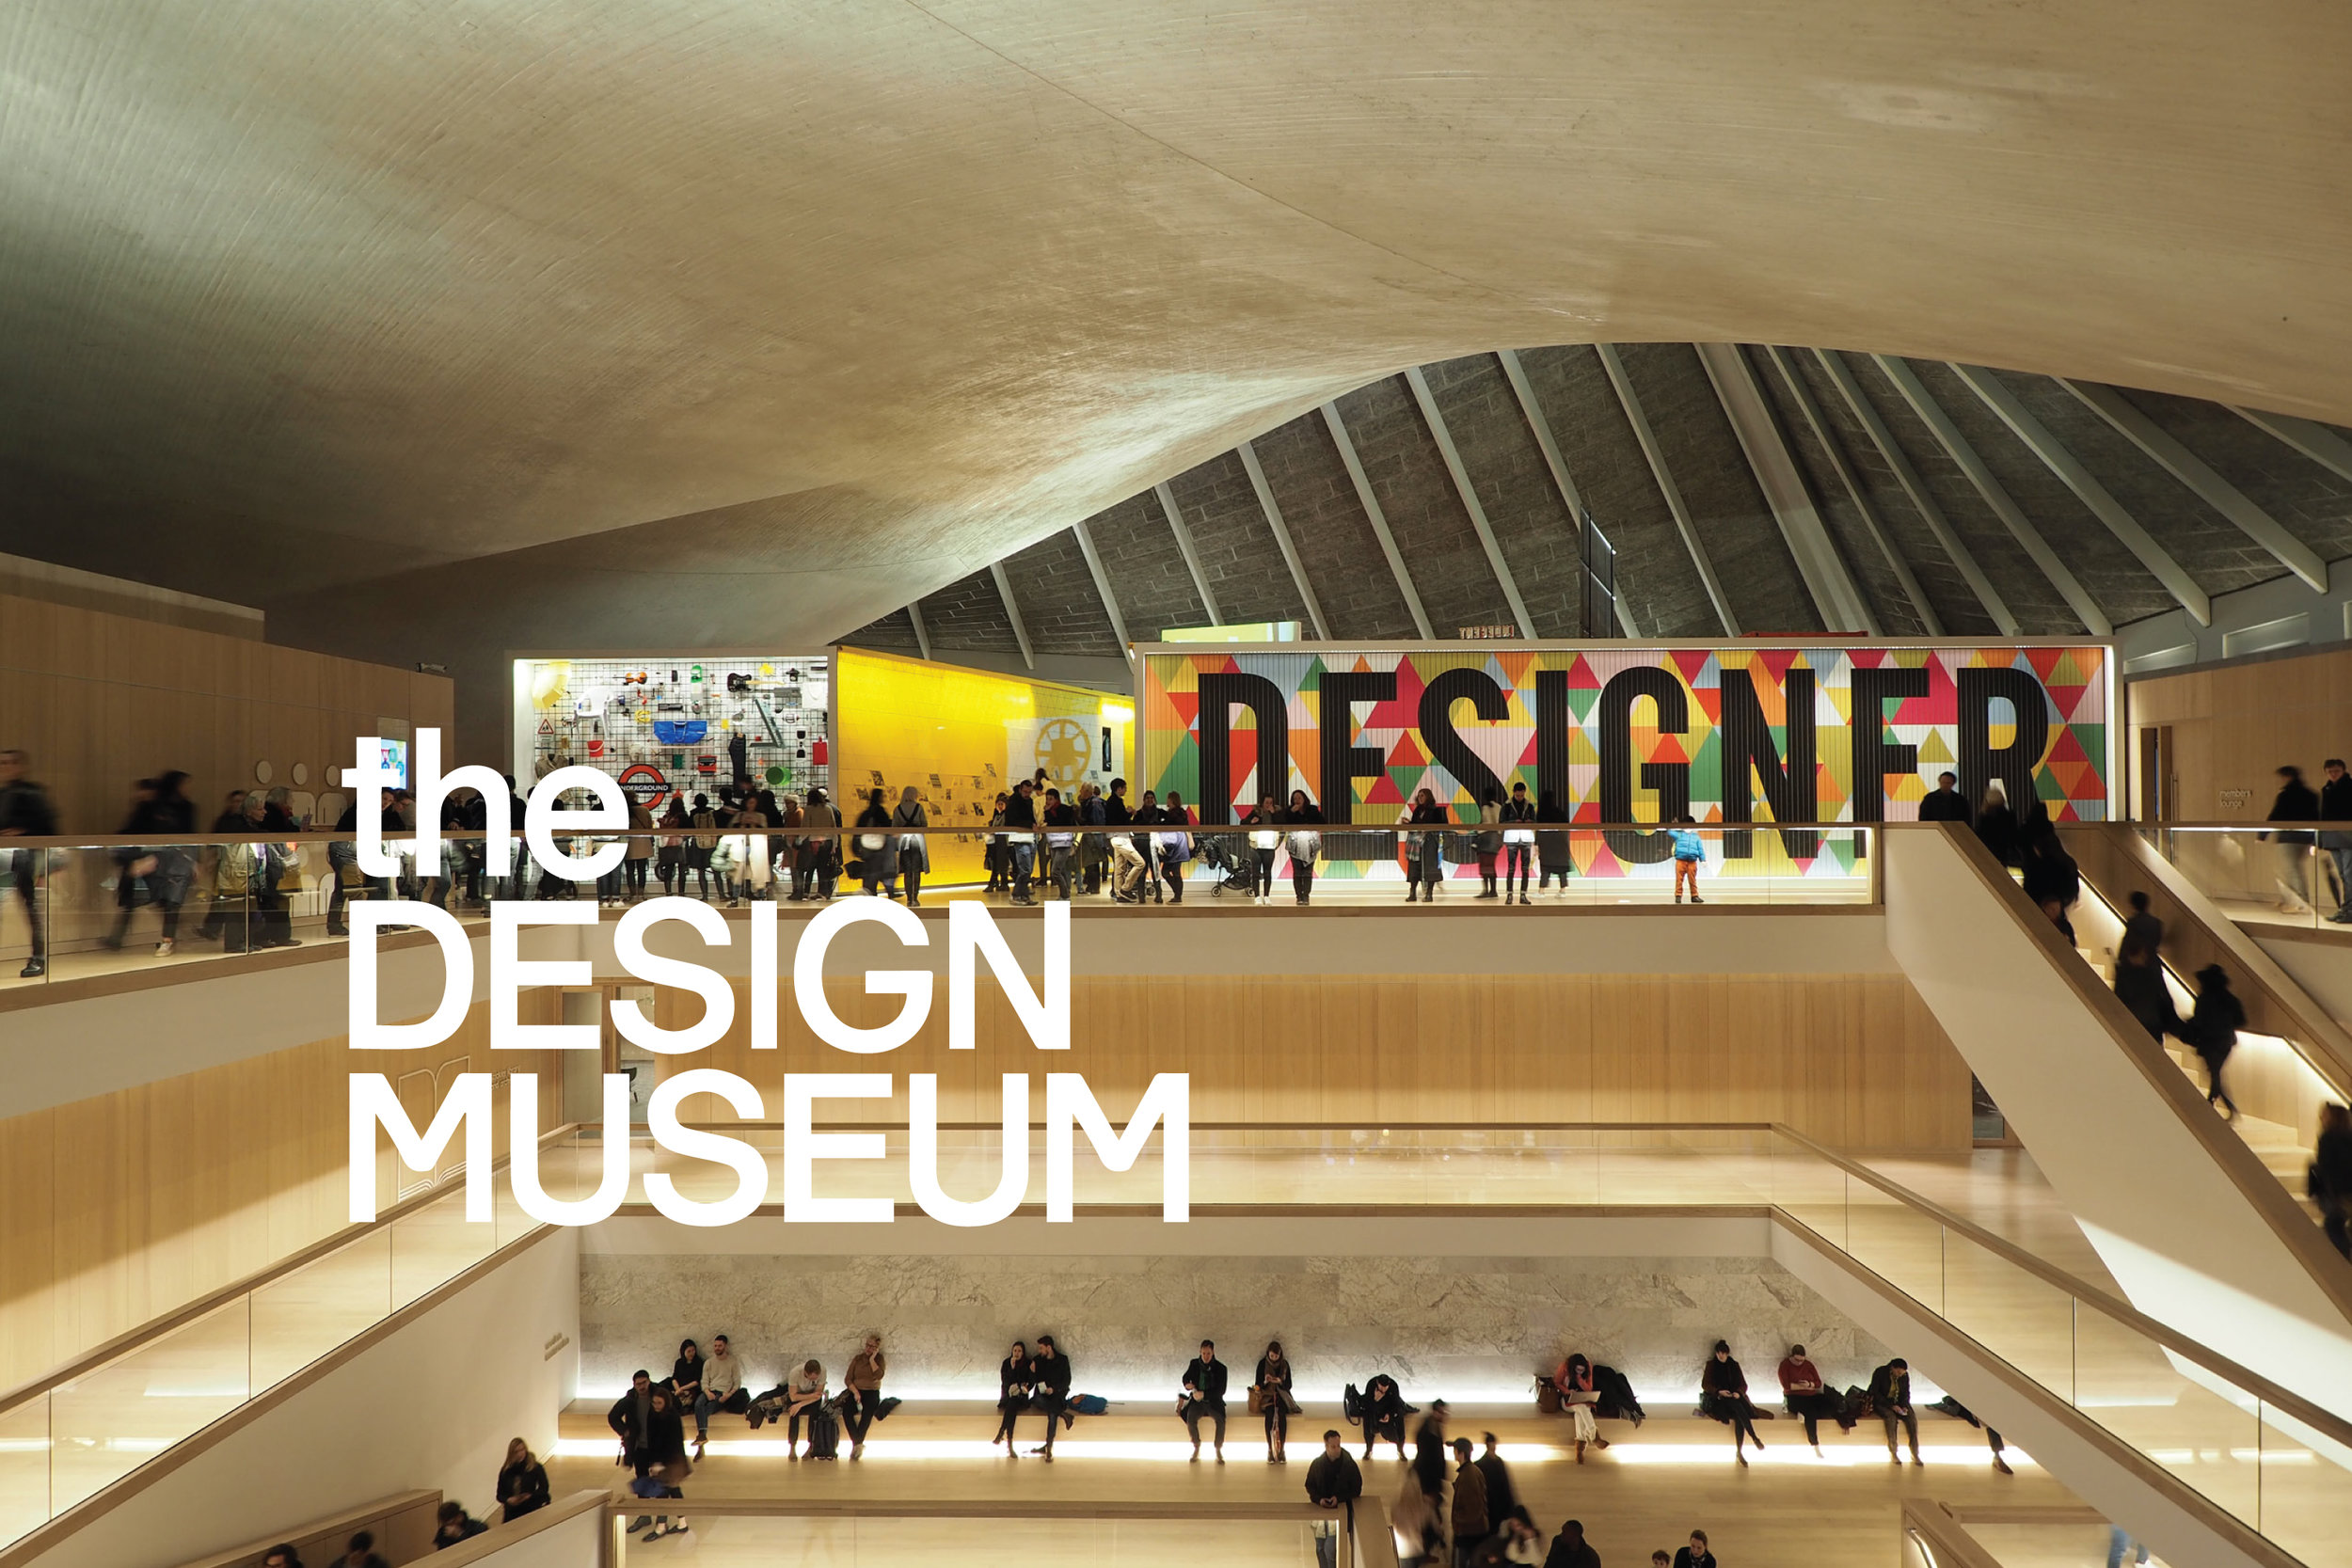 The Design Museum in London, which awarded our Organ-Chip Design of the Year